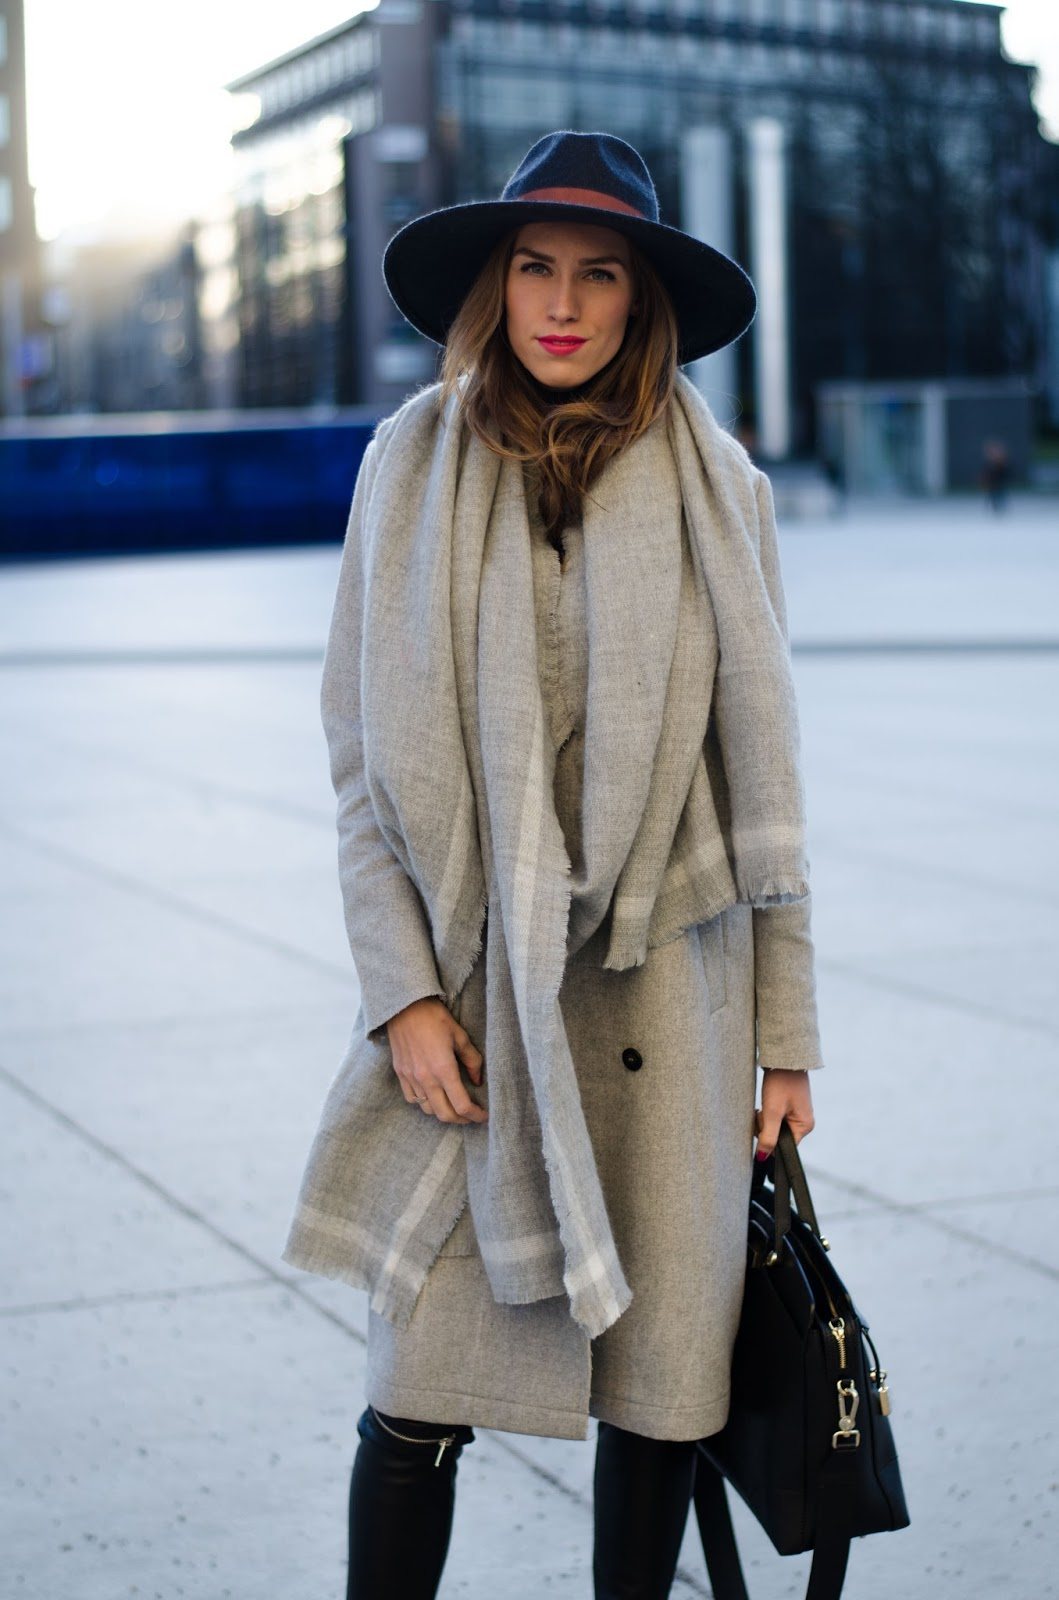 kristjaana mere gray wool coat long scarf fedora hat winter fashion